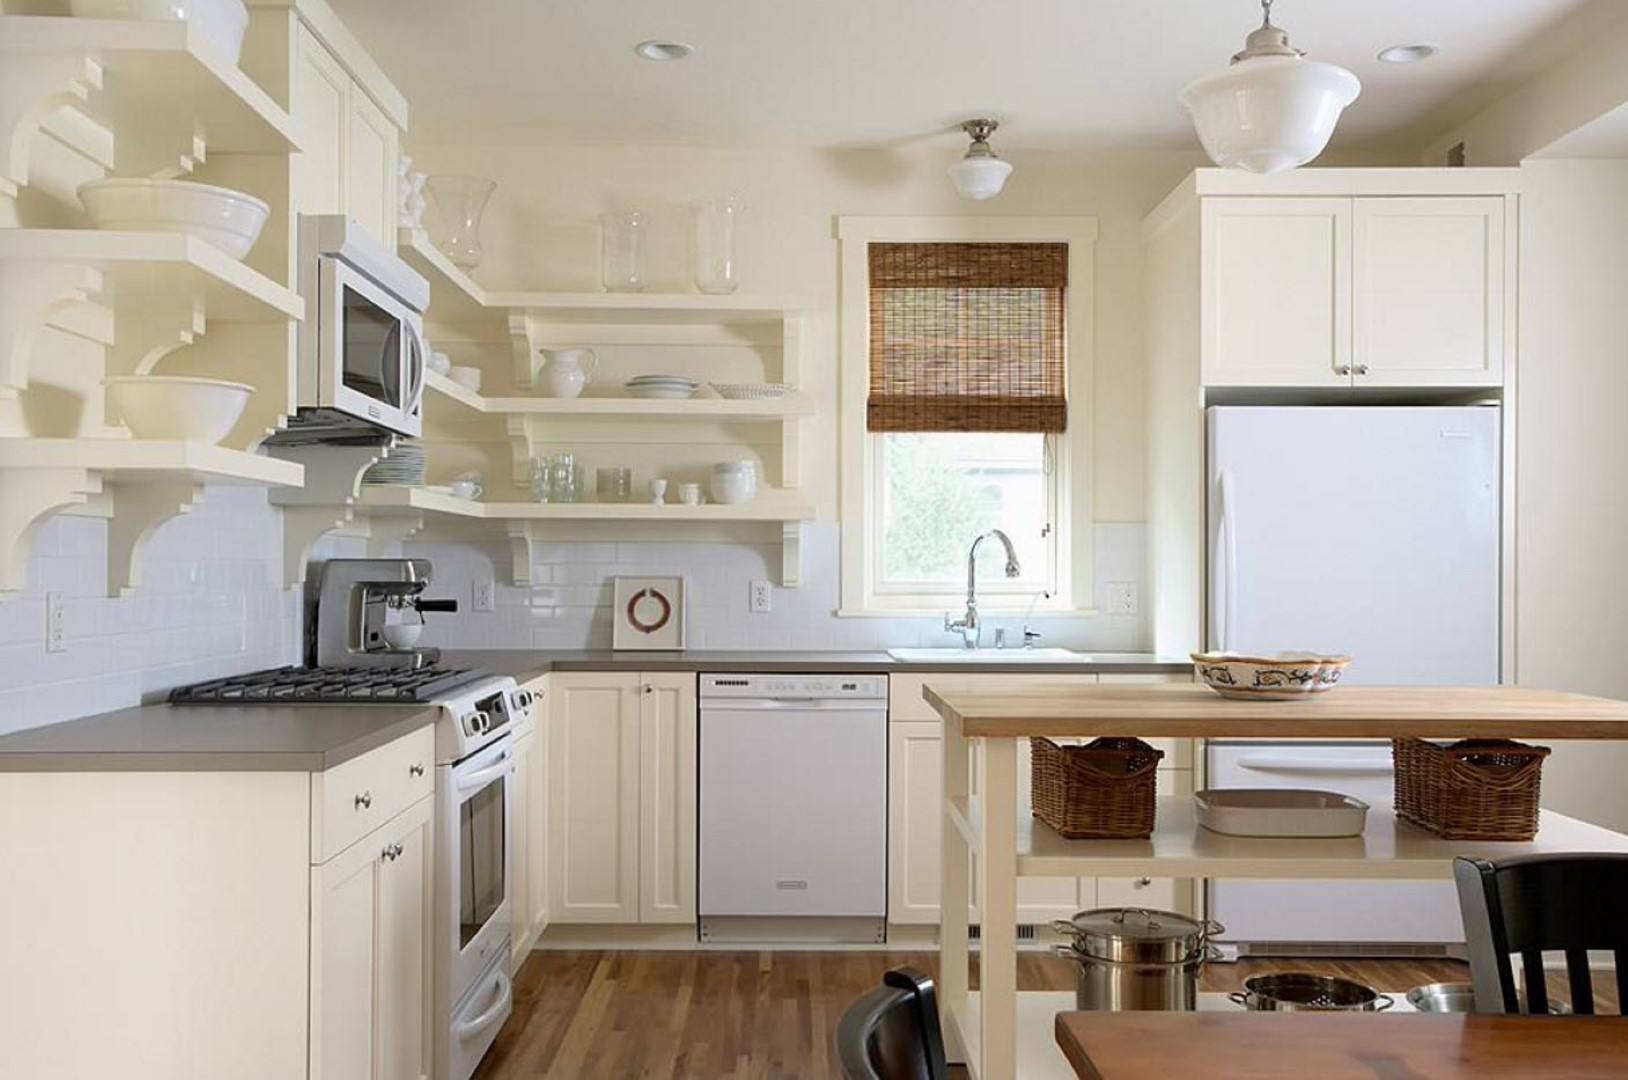 gray laminate countertop in cottage style kitchen